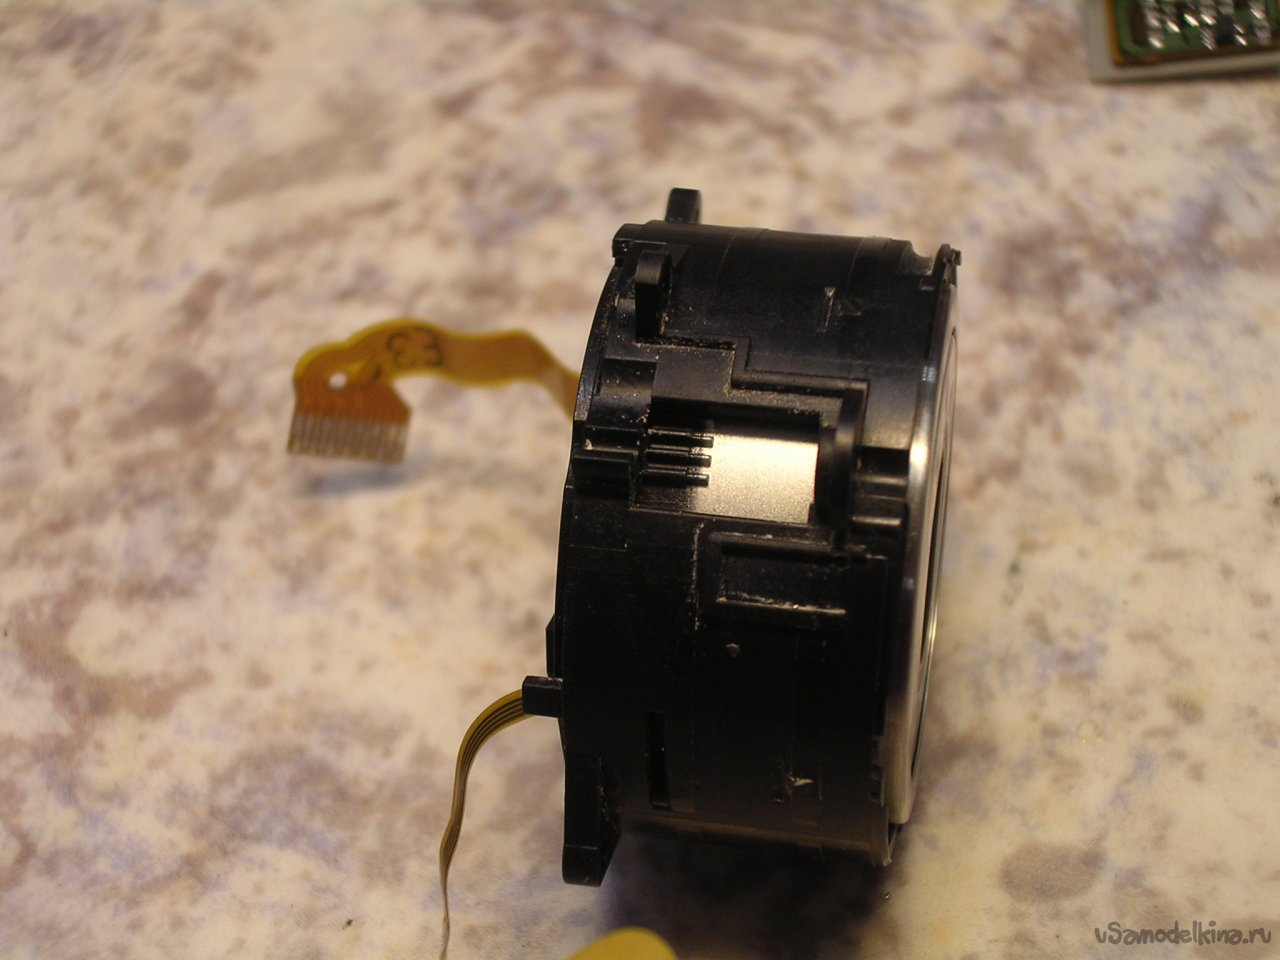 Clean the CANON ixus IIs camera lens from sand